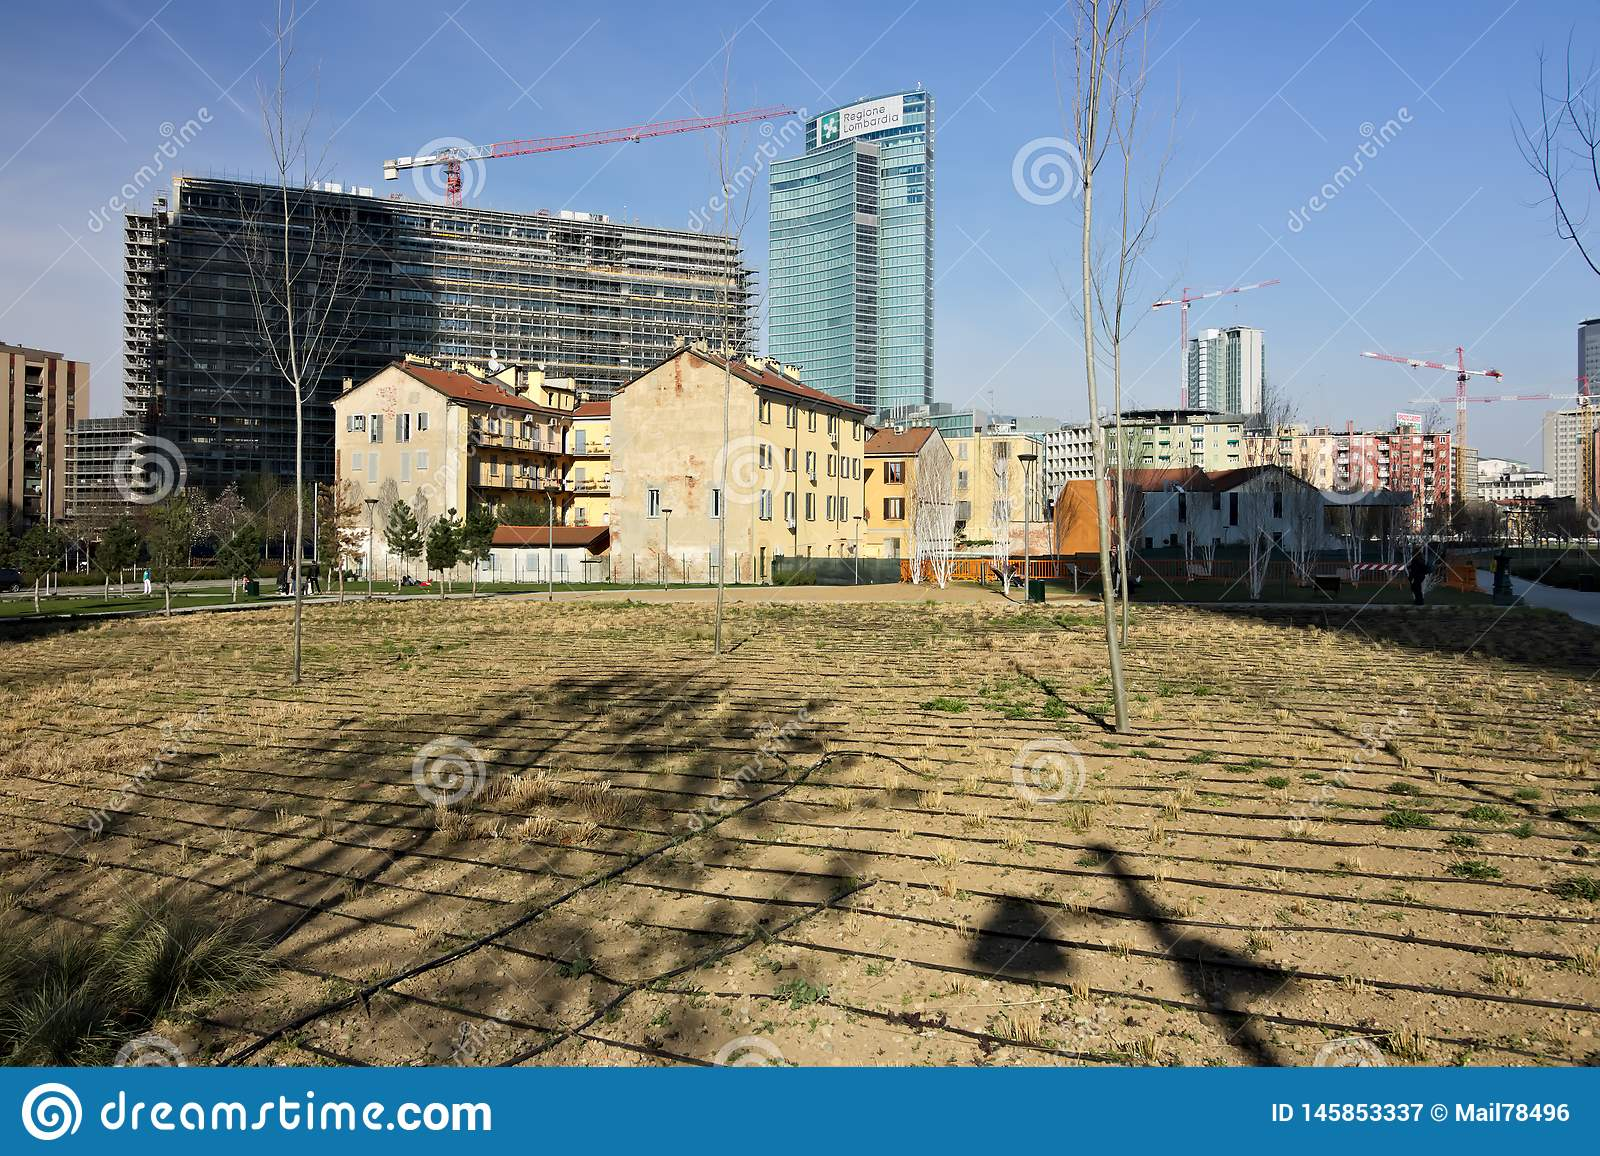 Milan March 21 2019. Ancient farmhouses and new tree planting